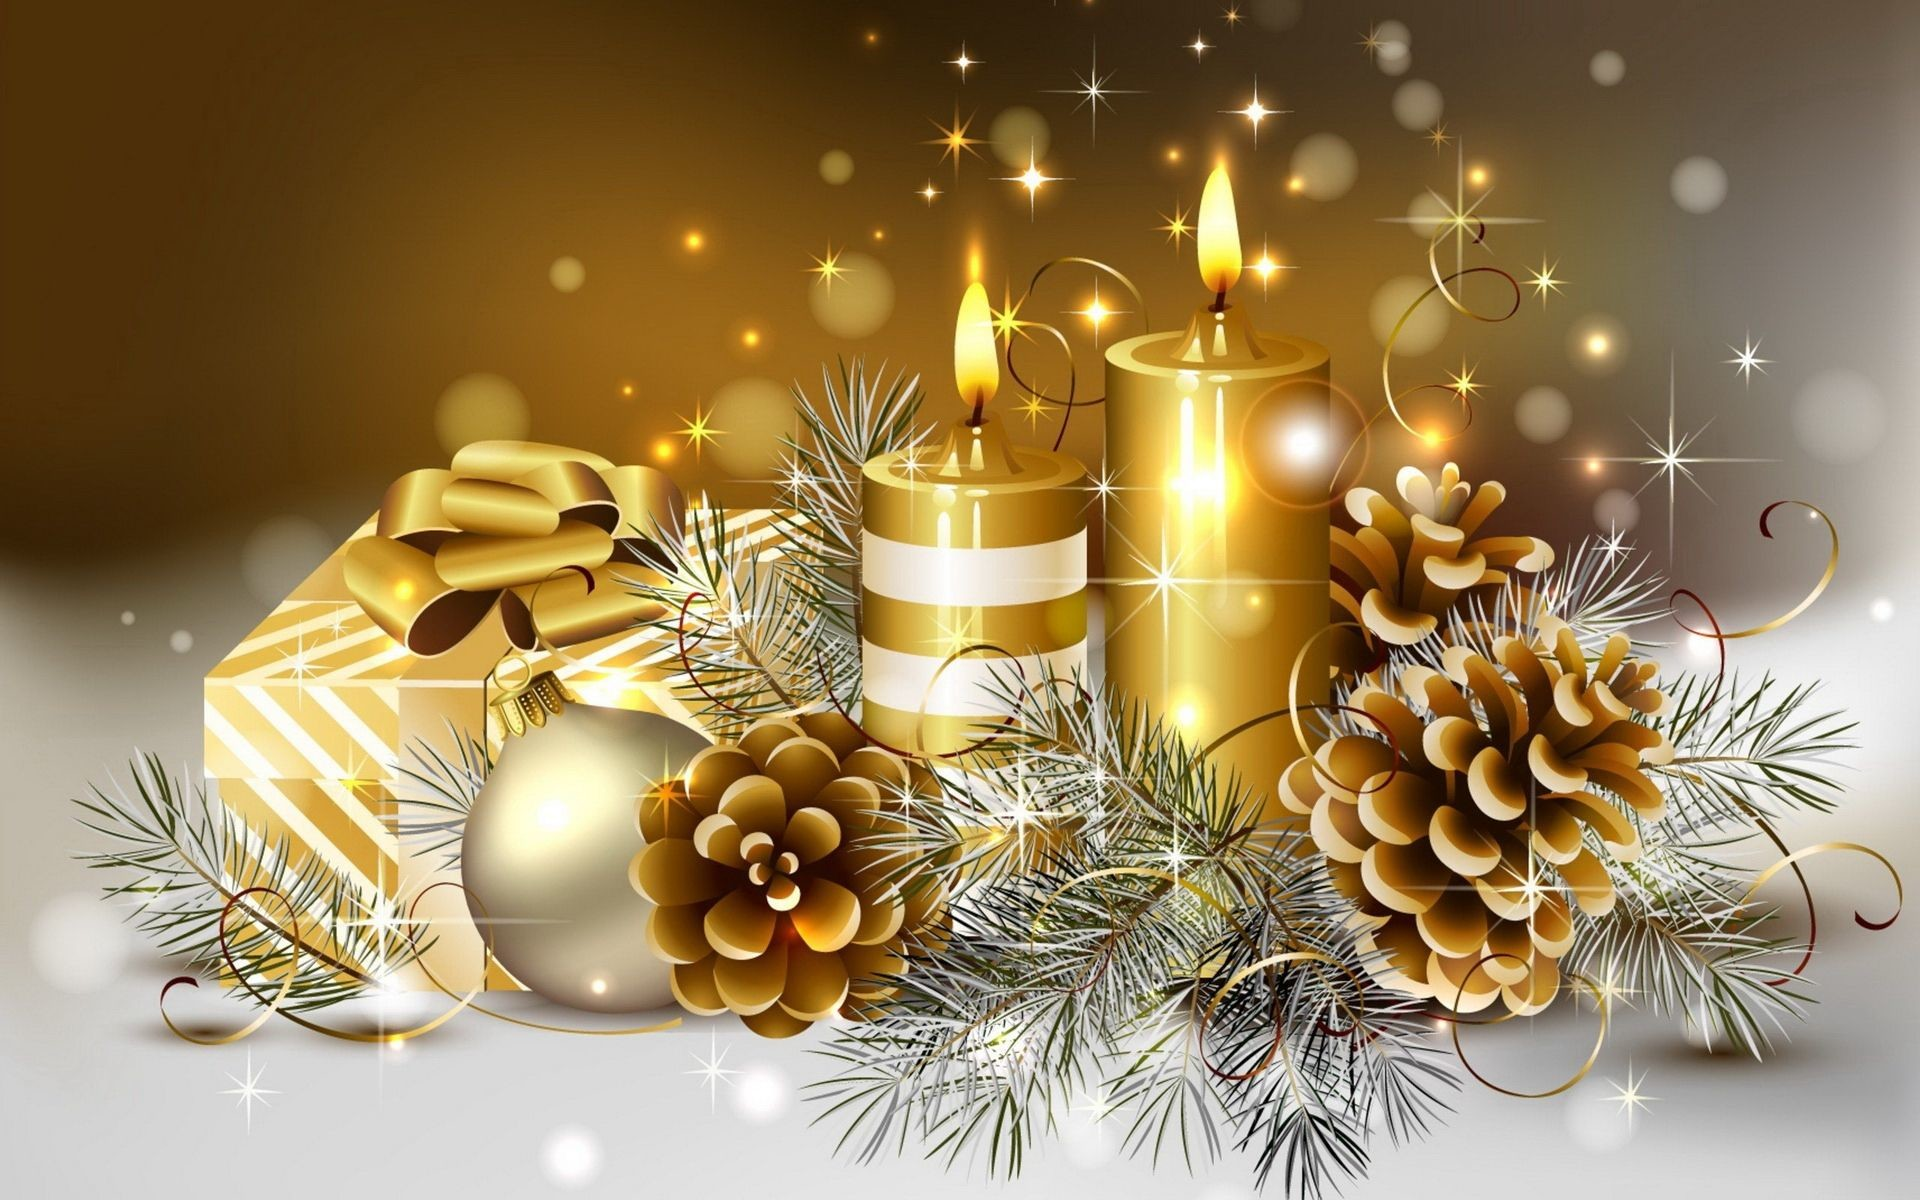 Res: 1920x1200, 40 Free Animated Christmas Wallpaper for Desktop